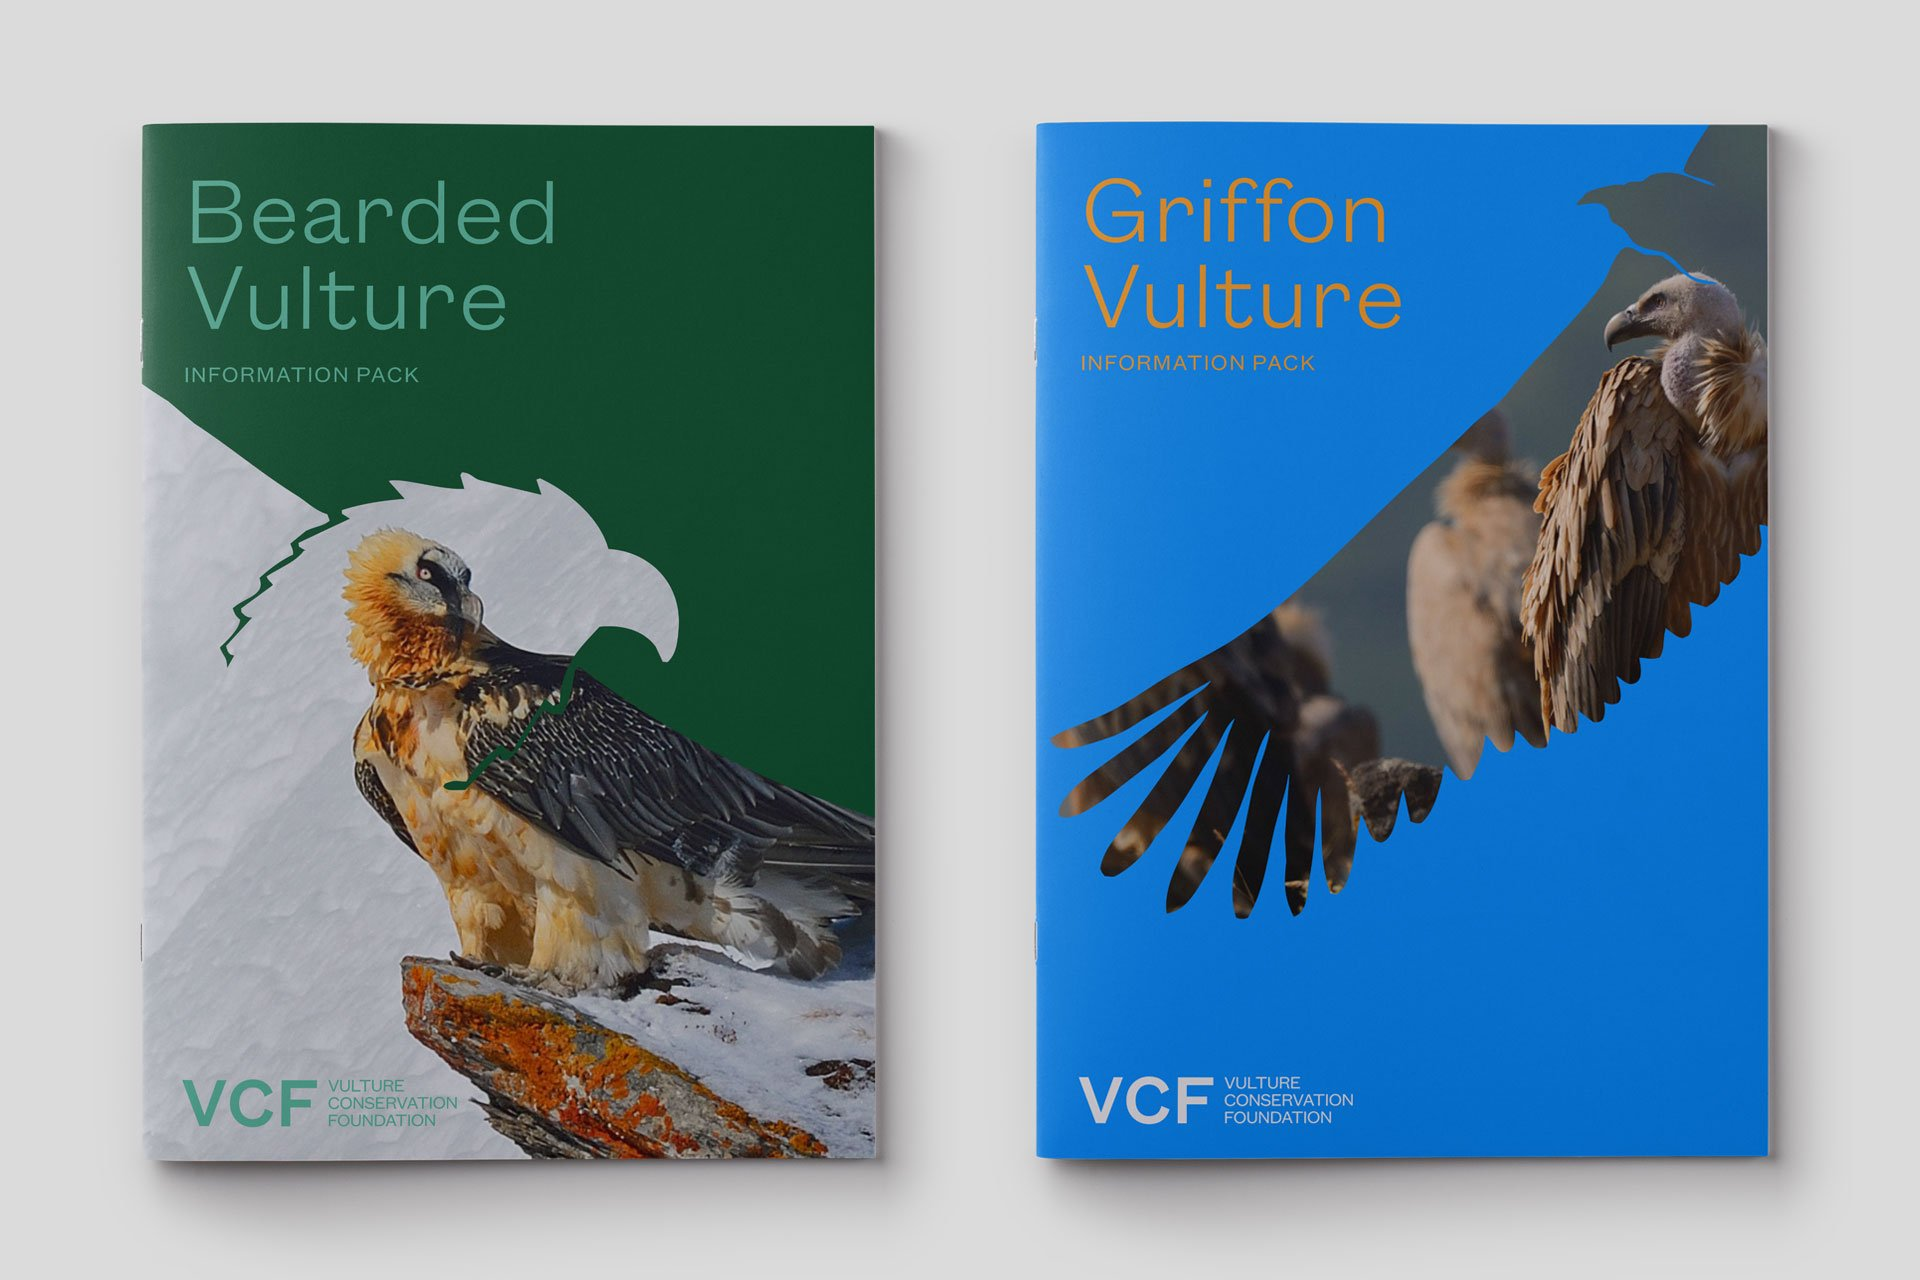 Vulture Conservation Foundation 7